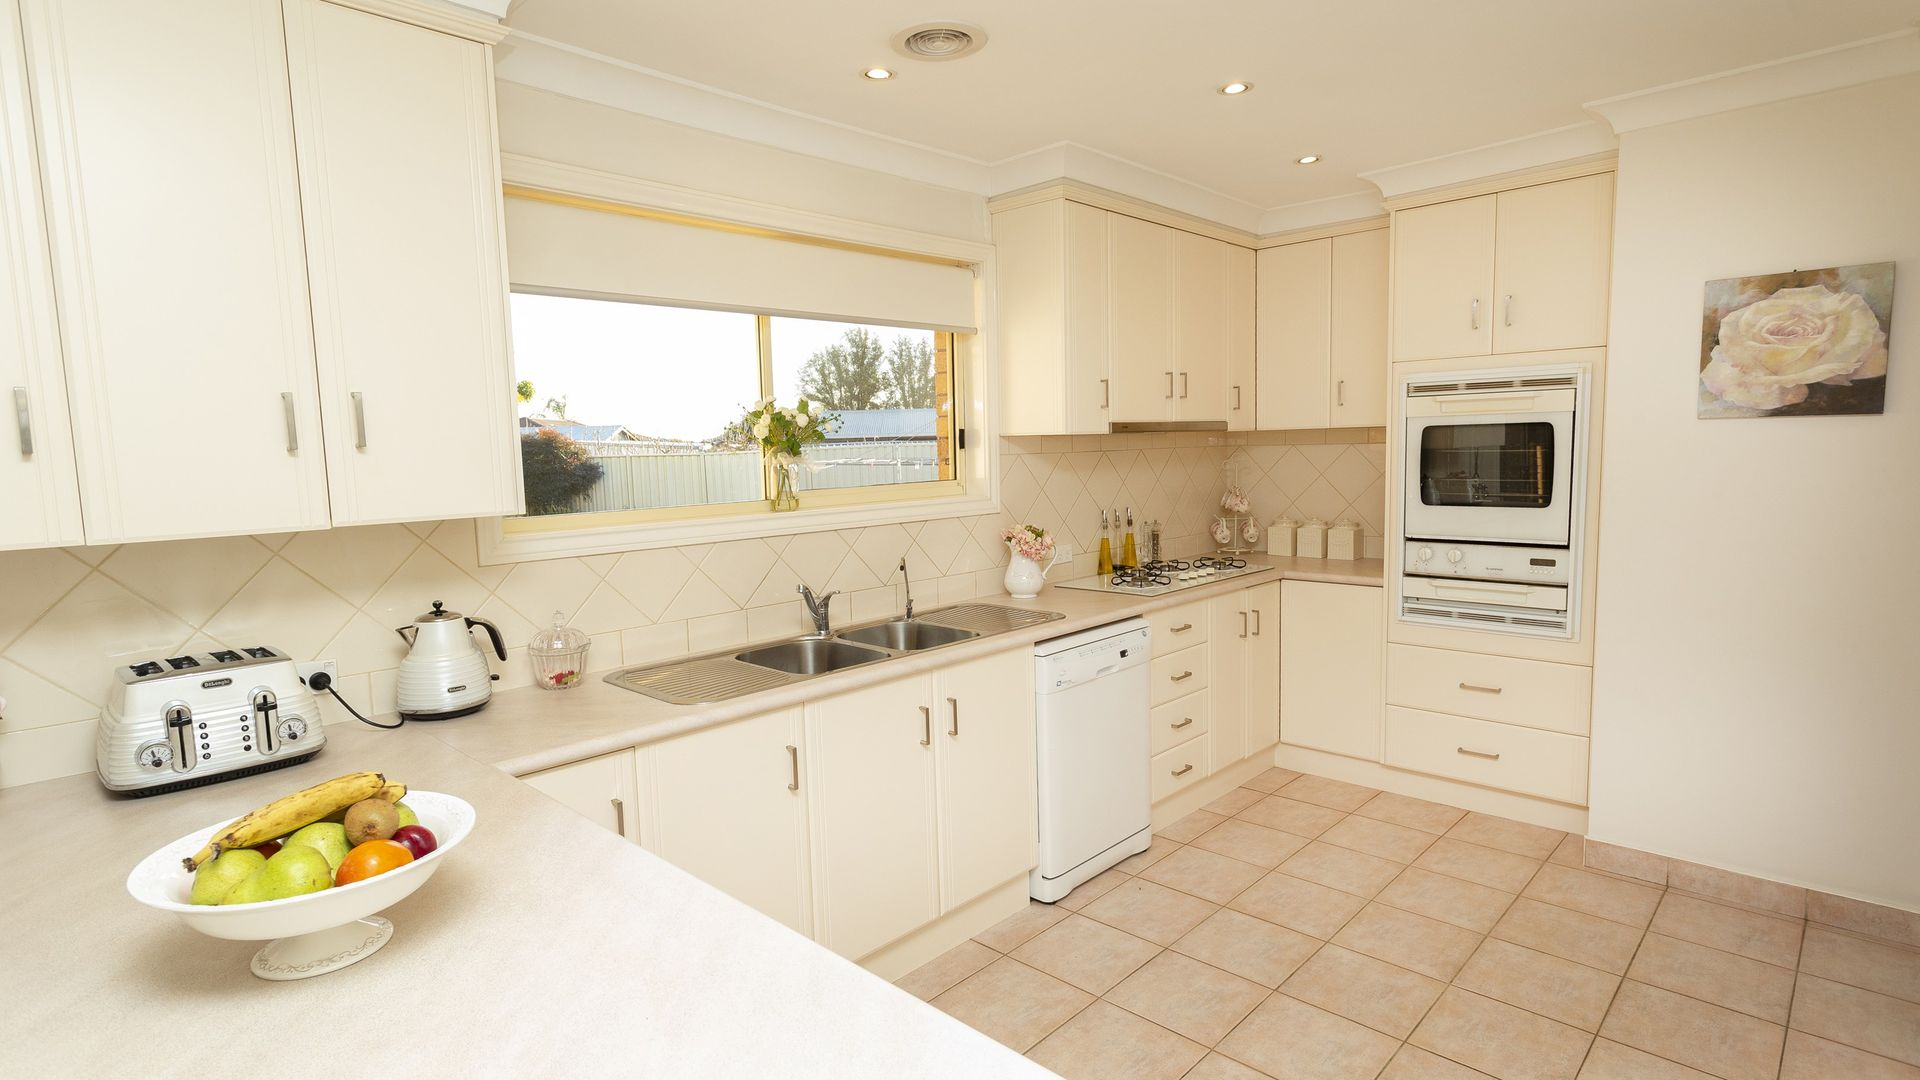 2 DAY STREET, Griffith NSW 2680, Image 2